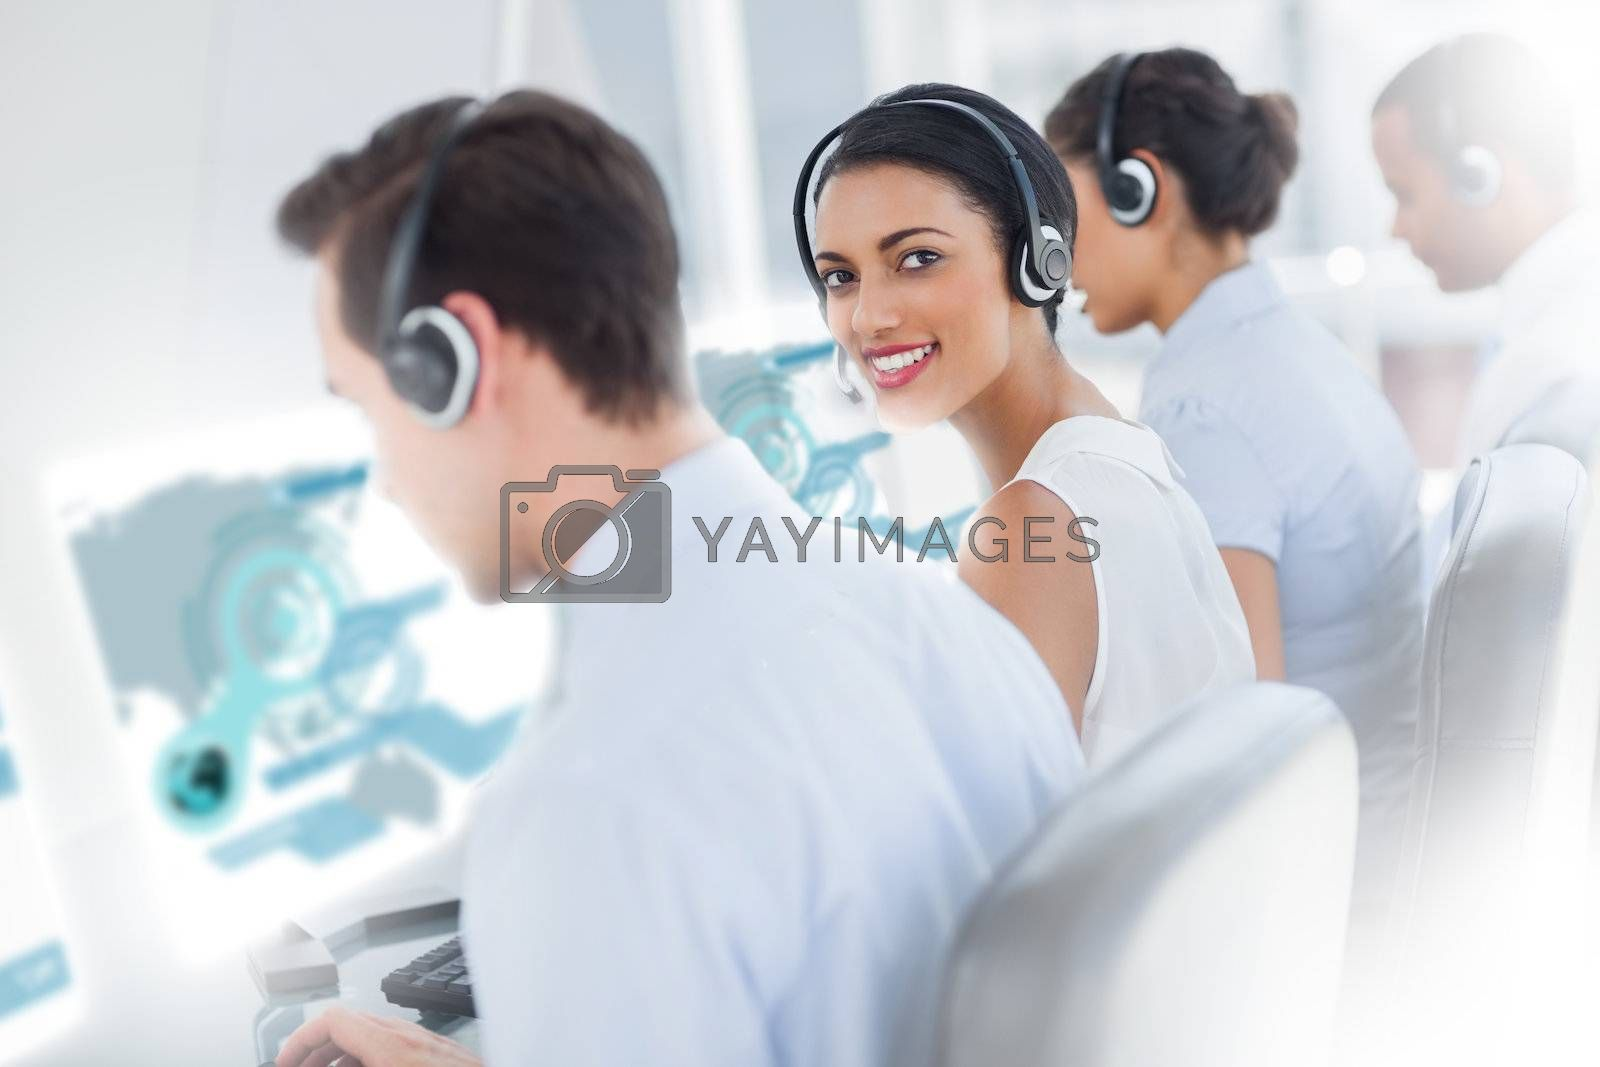 Pretty call center worker using futuristic interface hologram by Wavebreakmedia